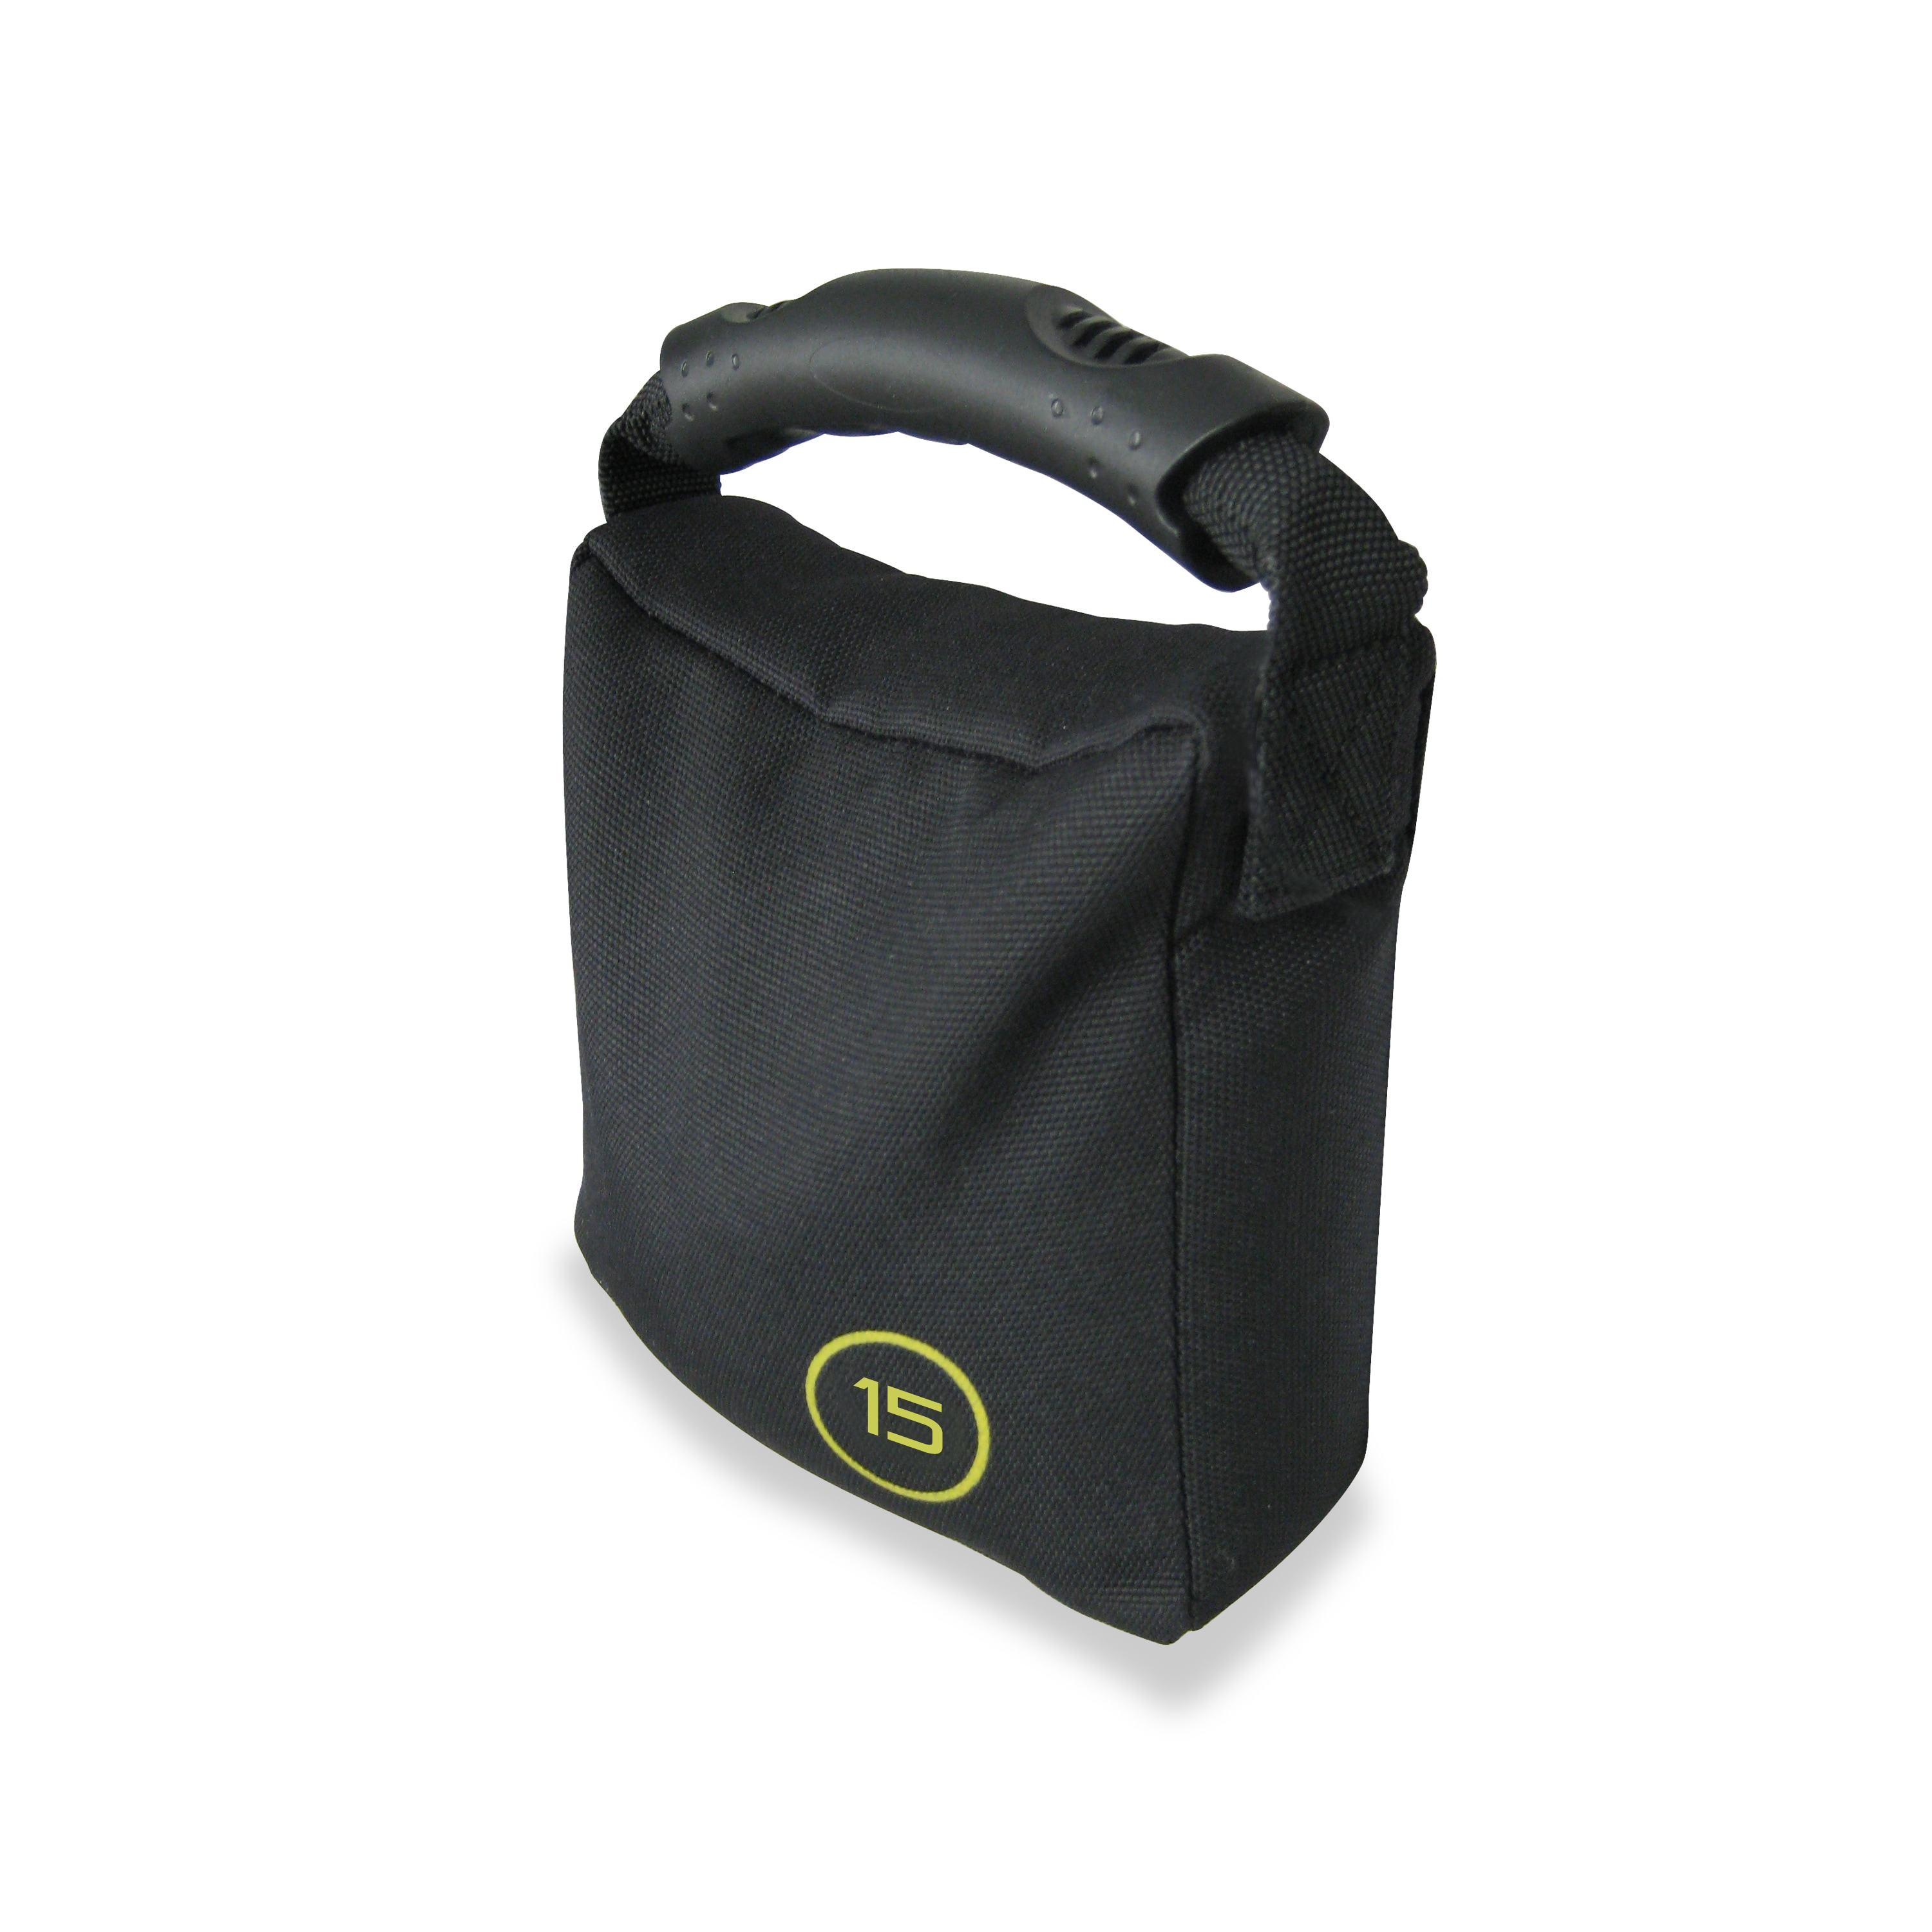 CAP Barbell 15 lb Weighted Bag